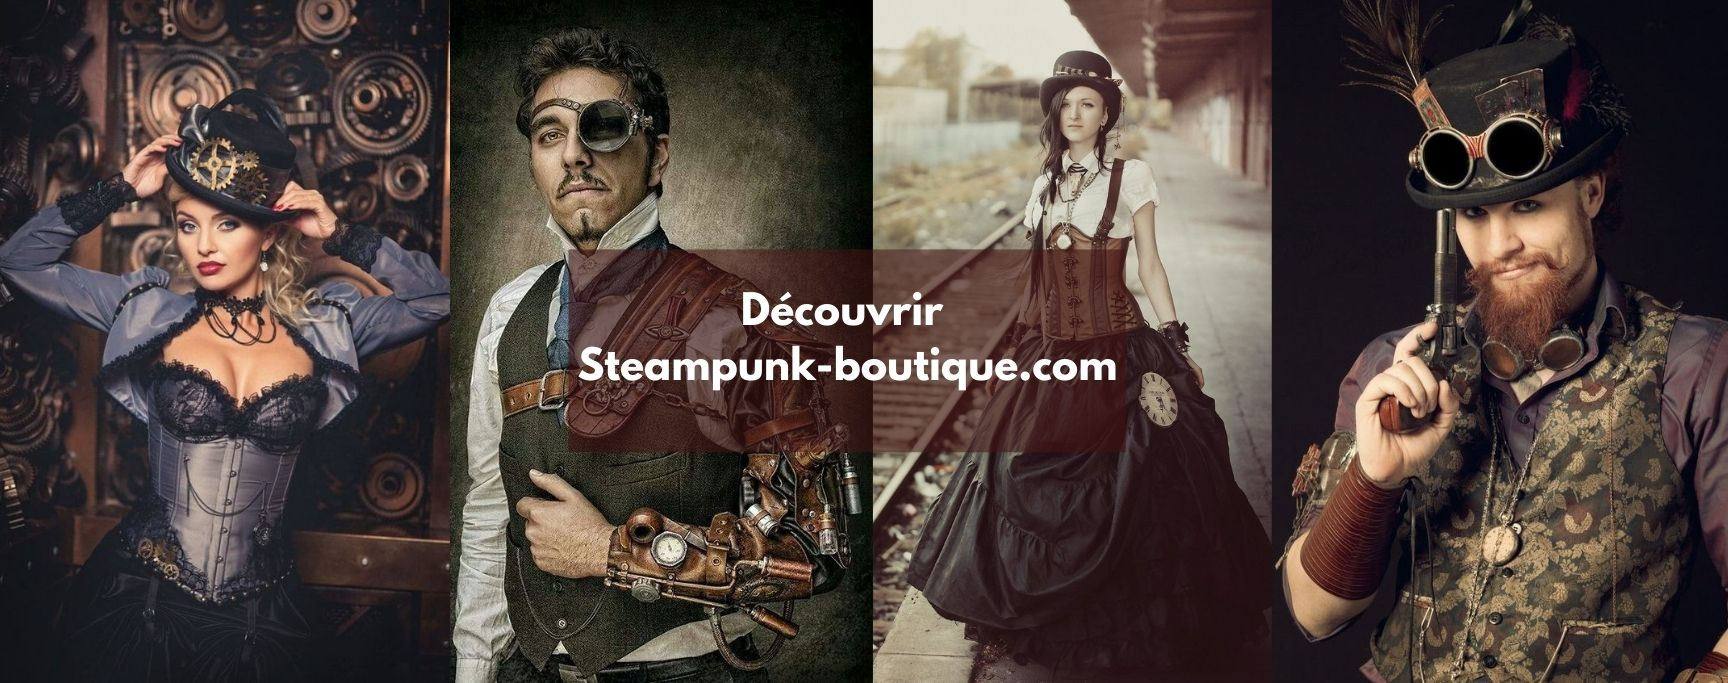 magasin steampunk gothique